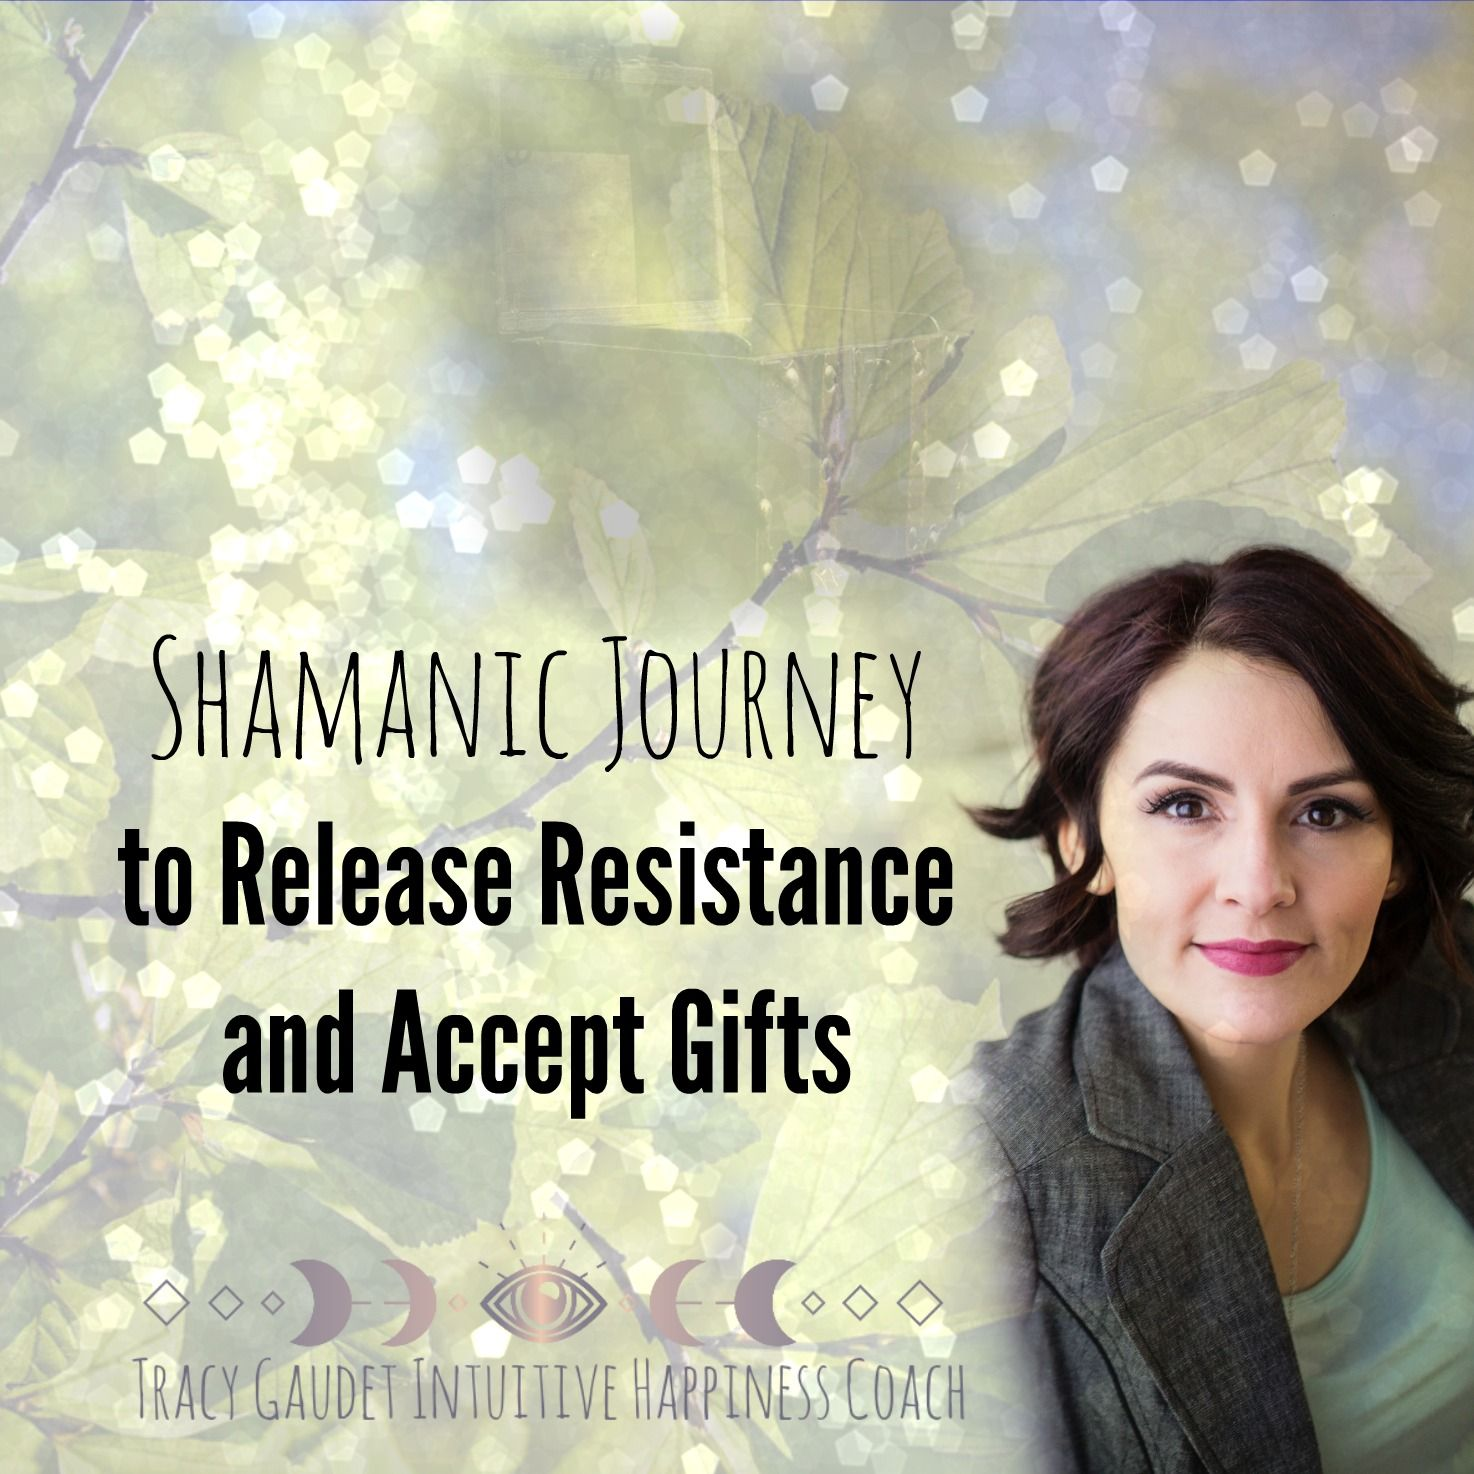 New free shamanic journey and guided energy healing